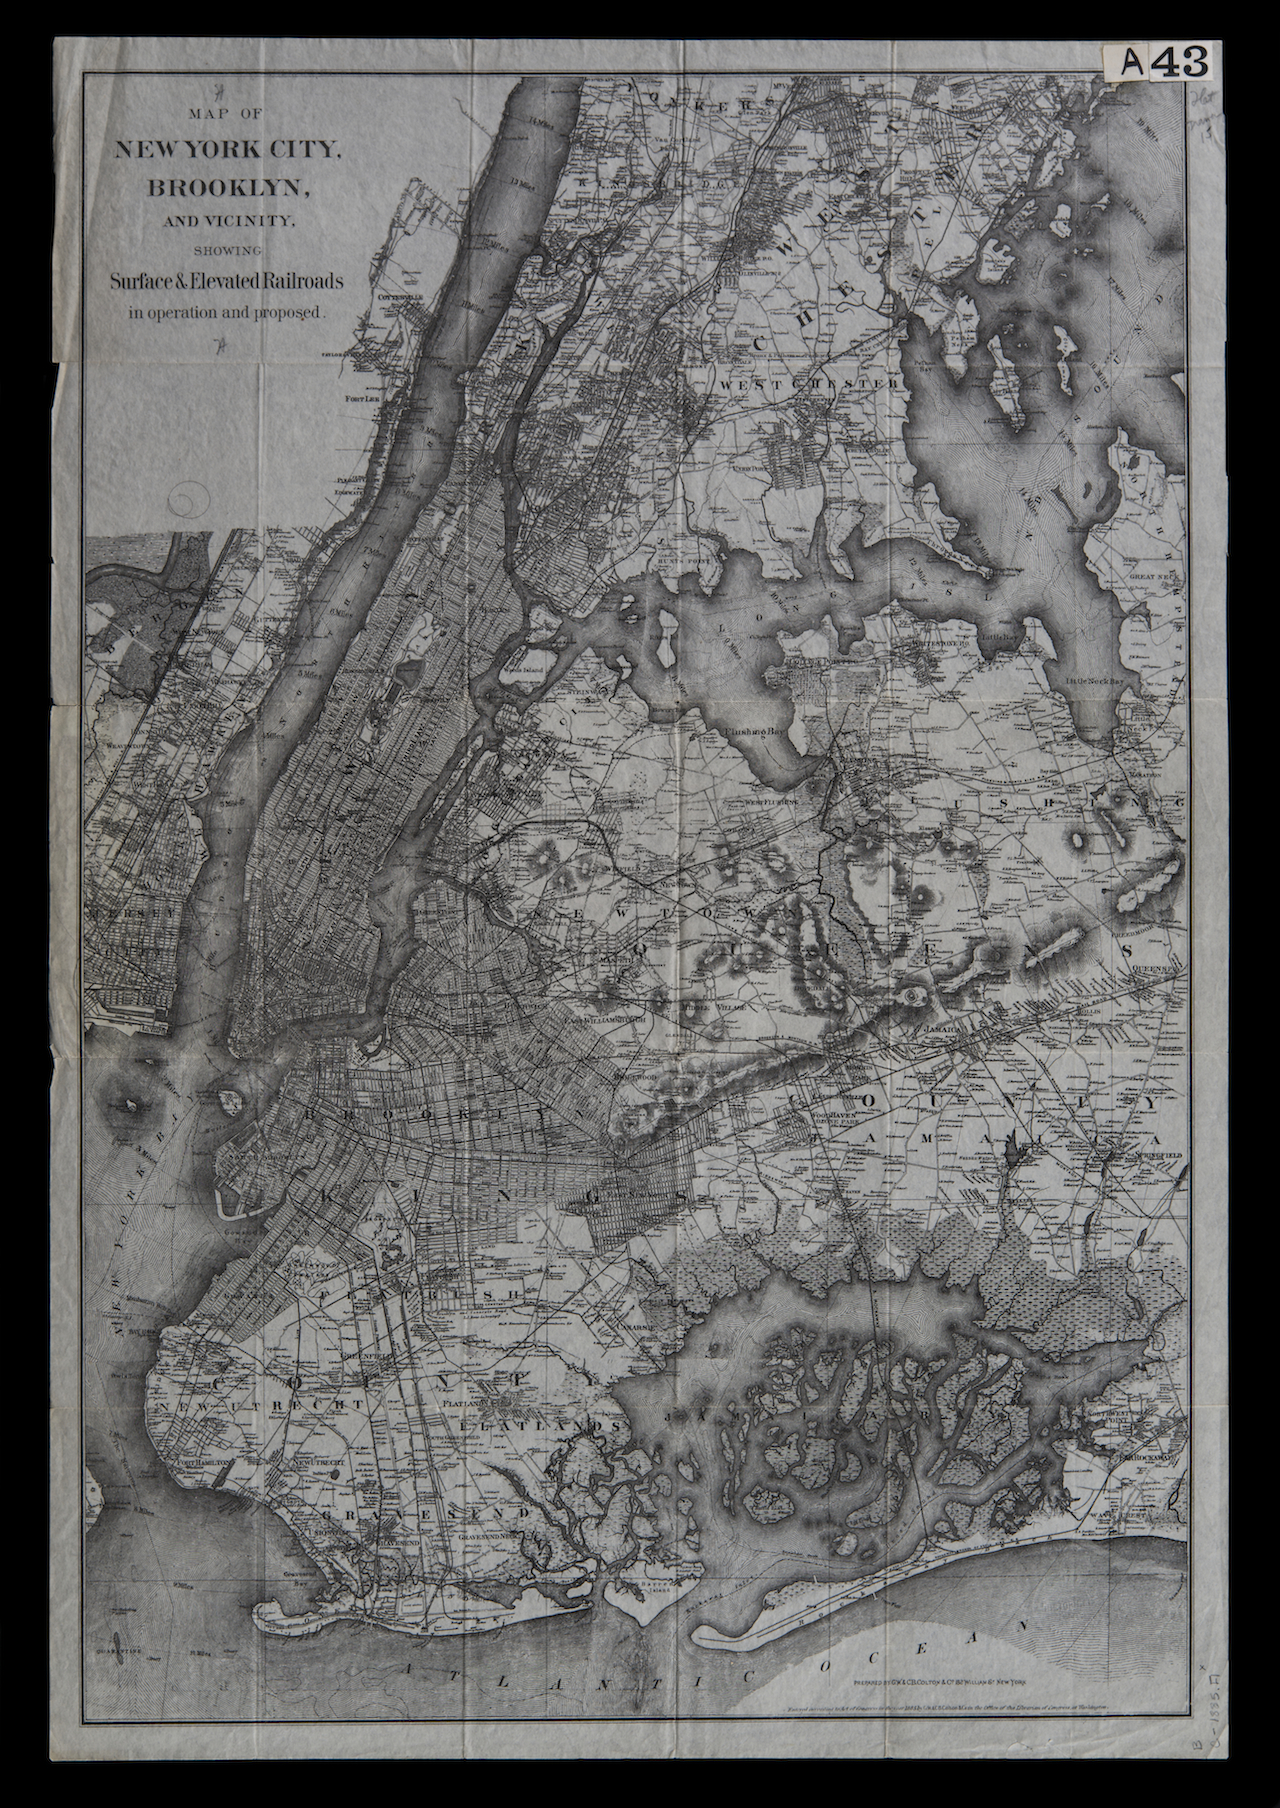 Paired with Gail Biederman: Map of New York City, Brooklyn, and Vicinity: Showing Surface & Elevated Railroads in Operation and Proposed, G.W. & C.B. Colton, circa 1885; Flat Maps B C-1885.fl; Brooklyn Historical Society